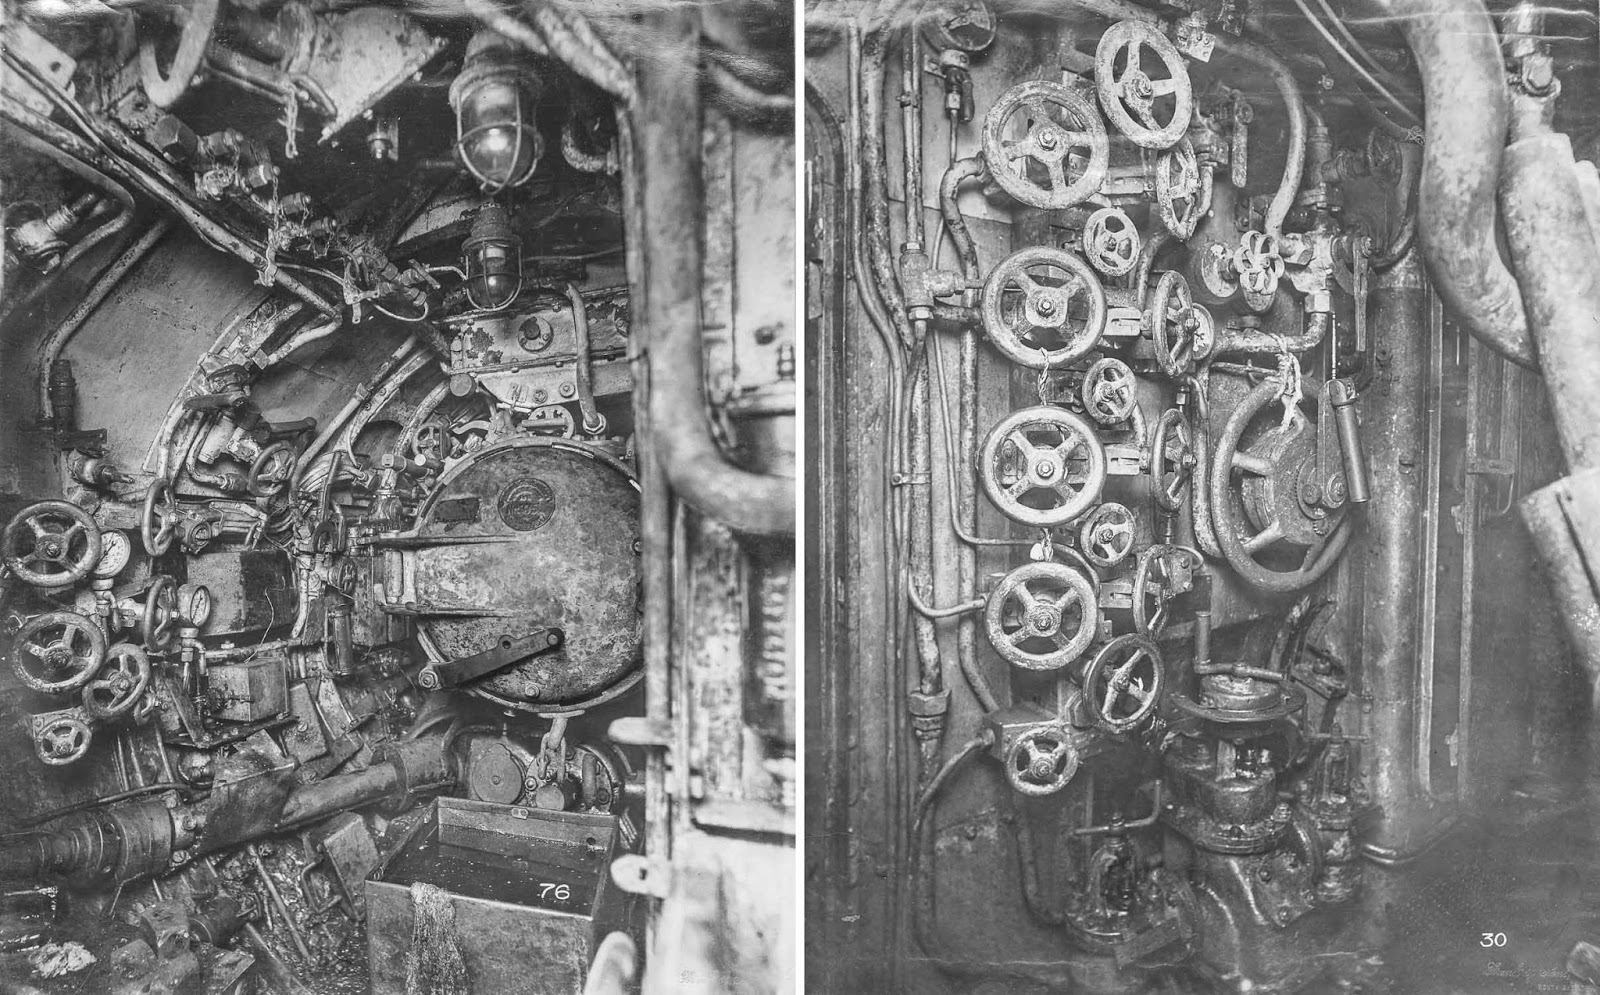 (Left) Aft torpedo room. (Right) Control room looking forward to port. Wheels to control air temperature and pressure are visible.